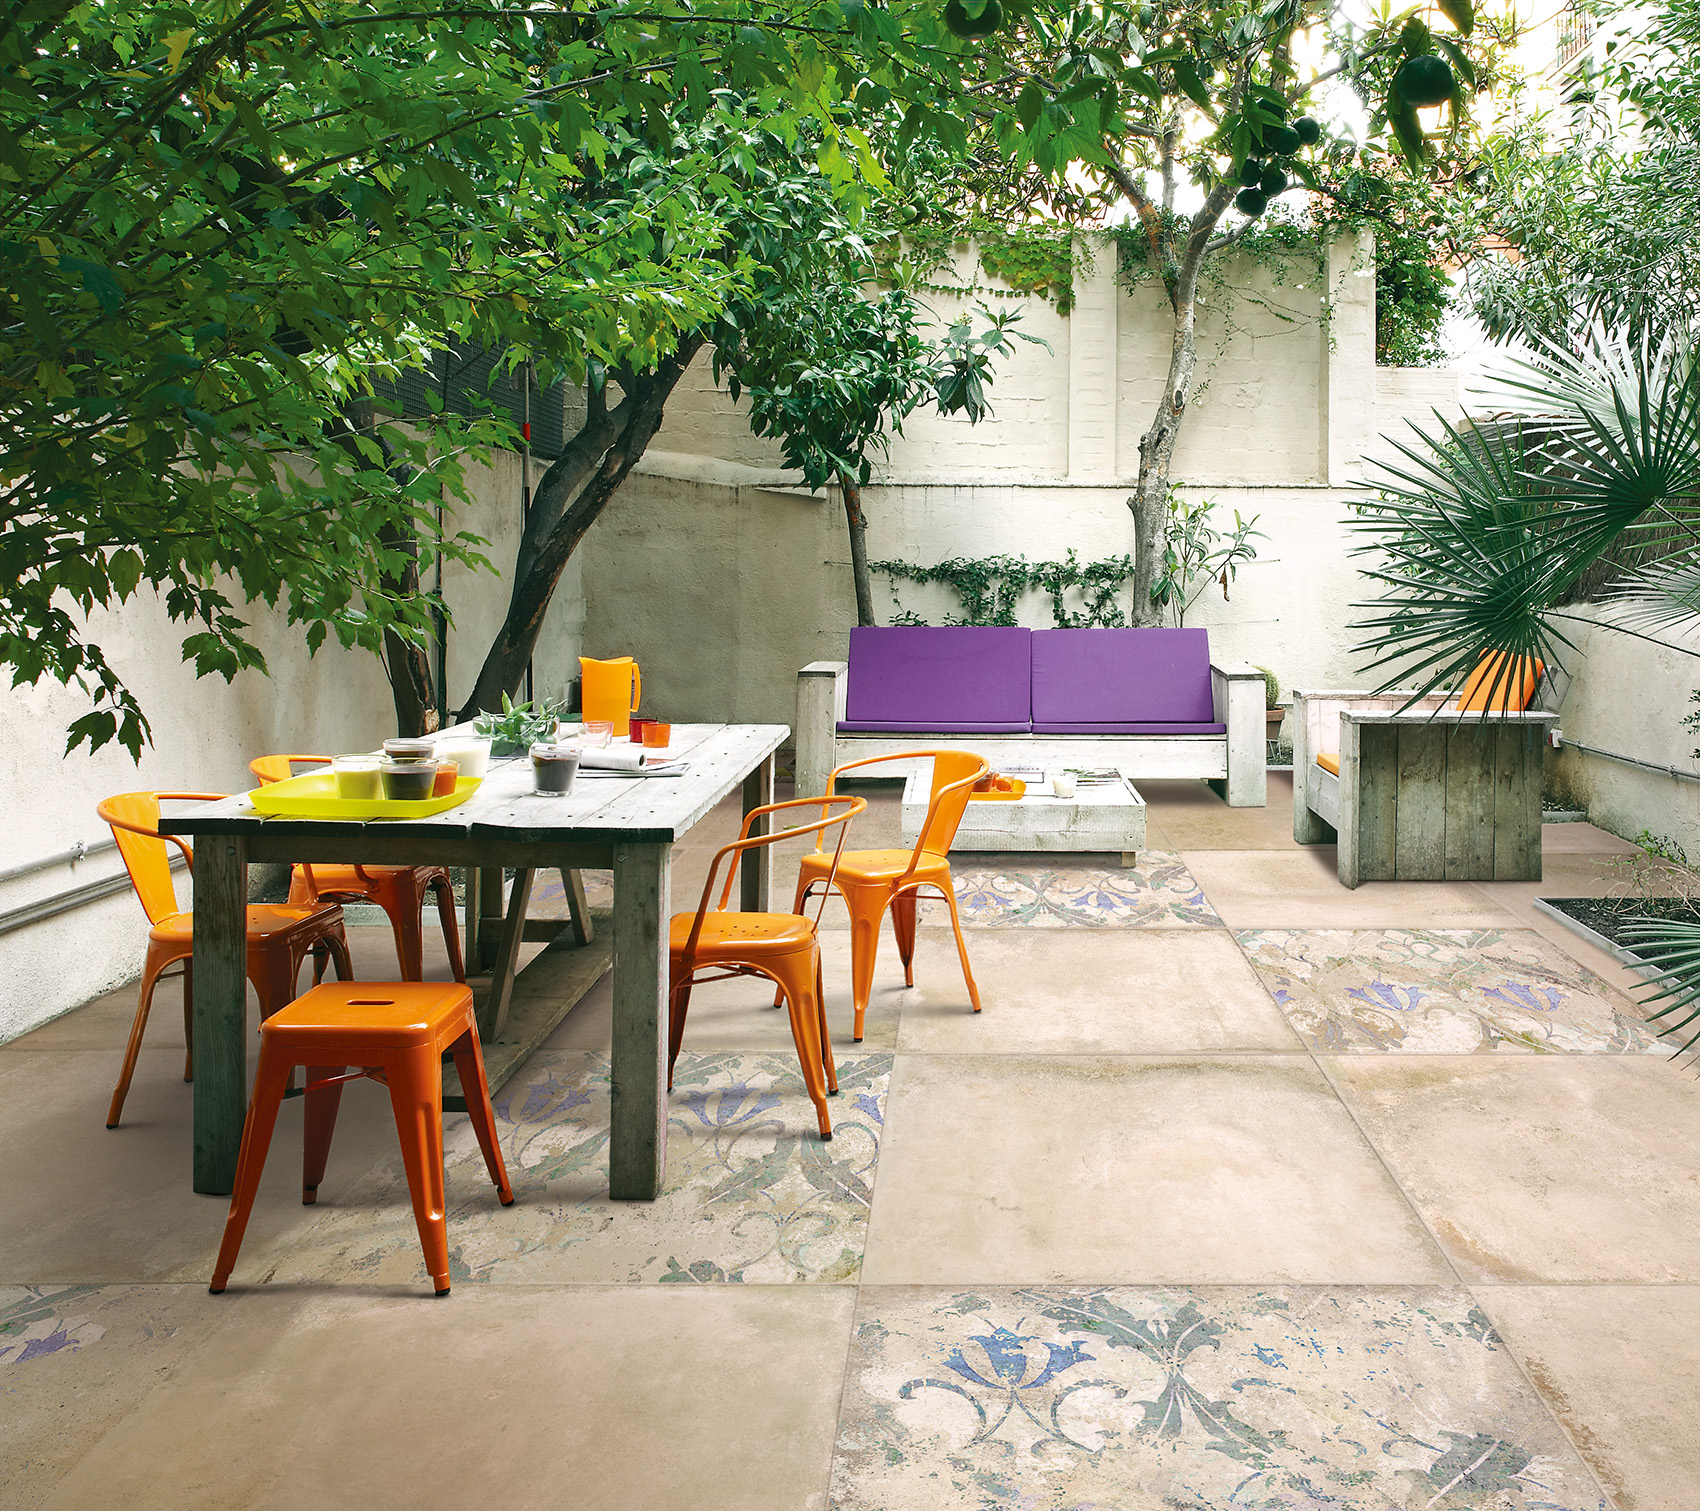 Tagina-Ilcottotagina-Clear_Painted-outdoor-p